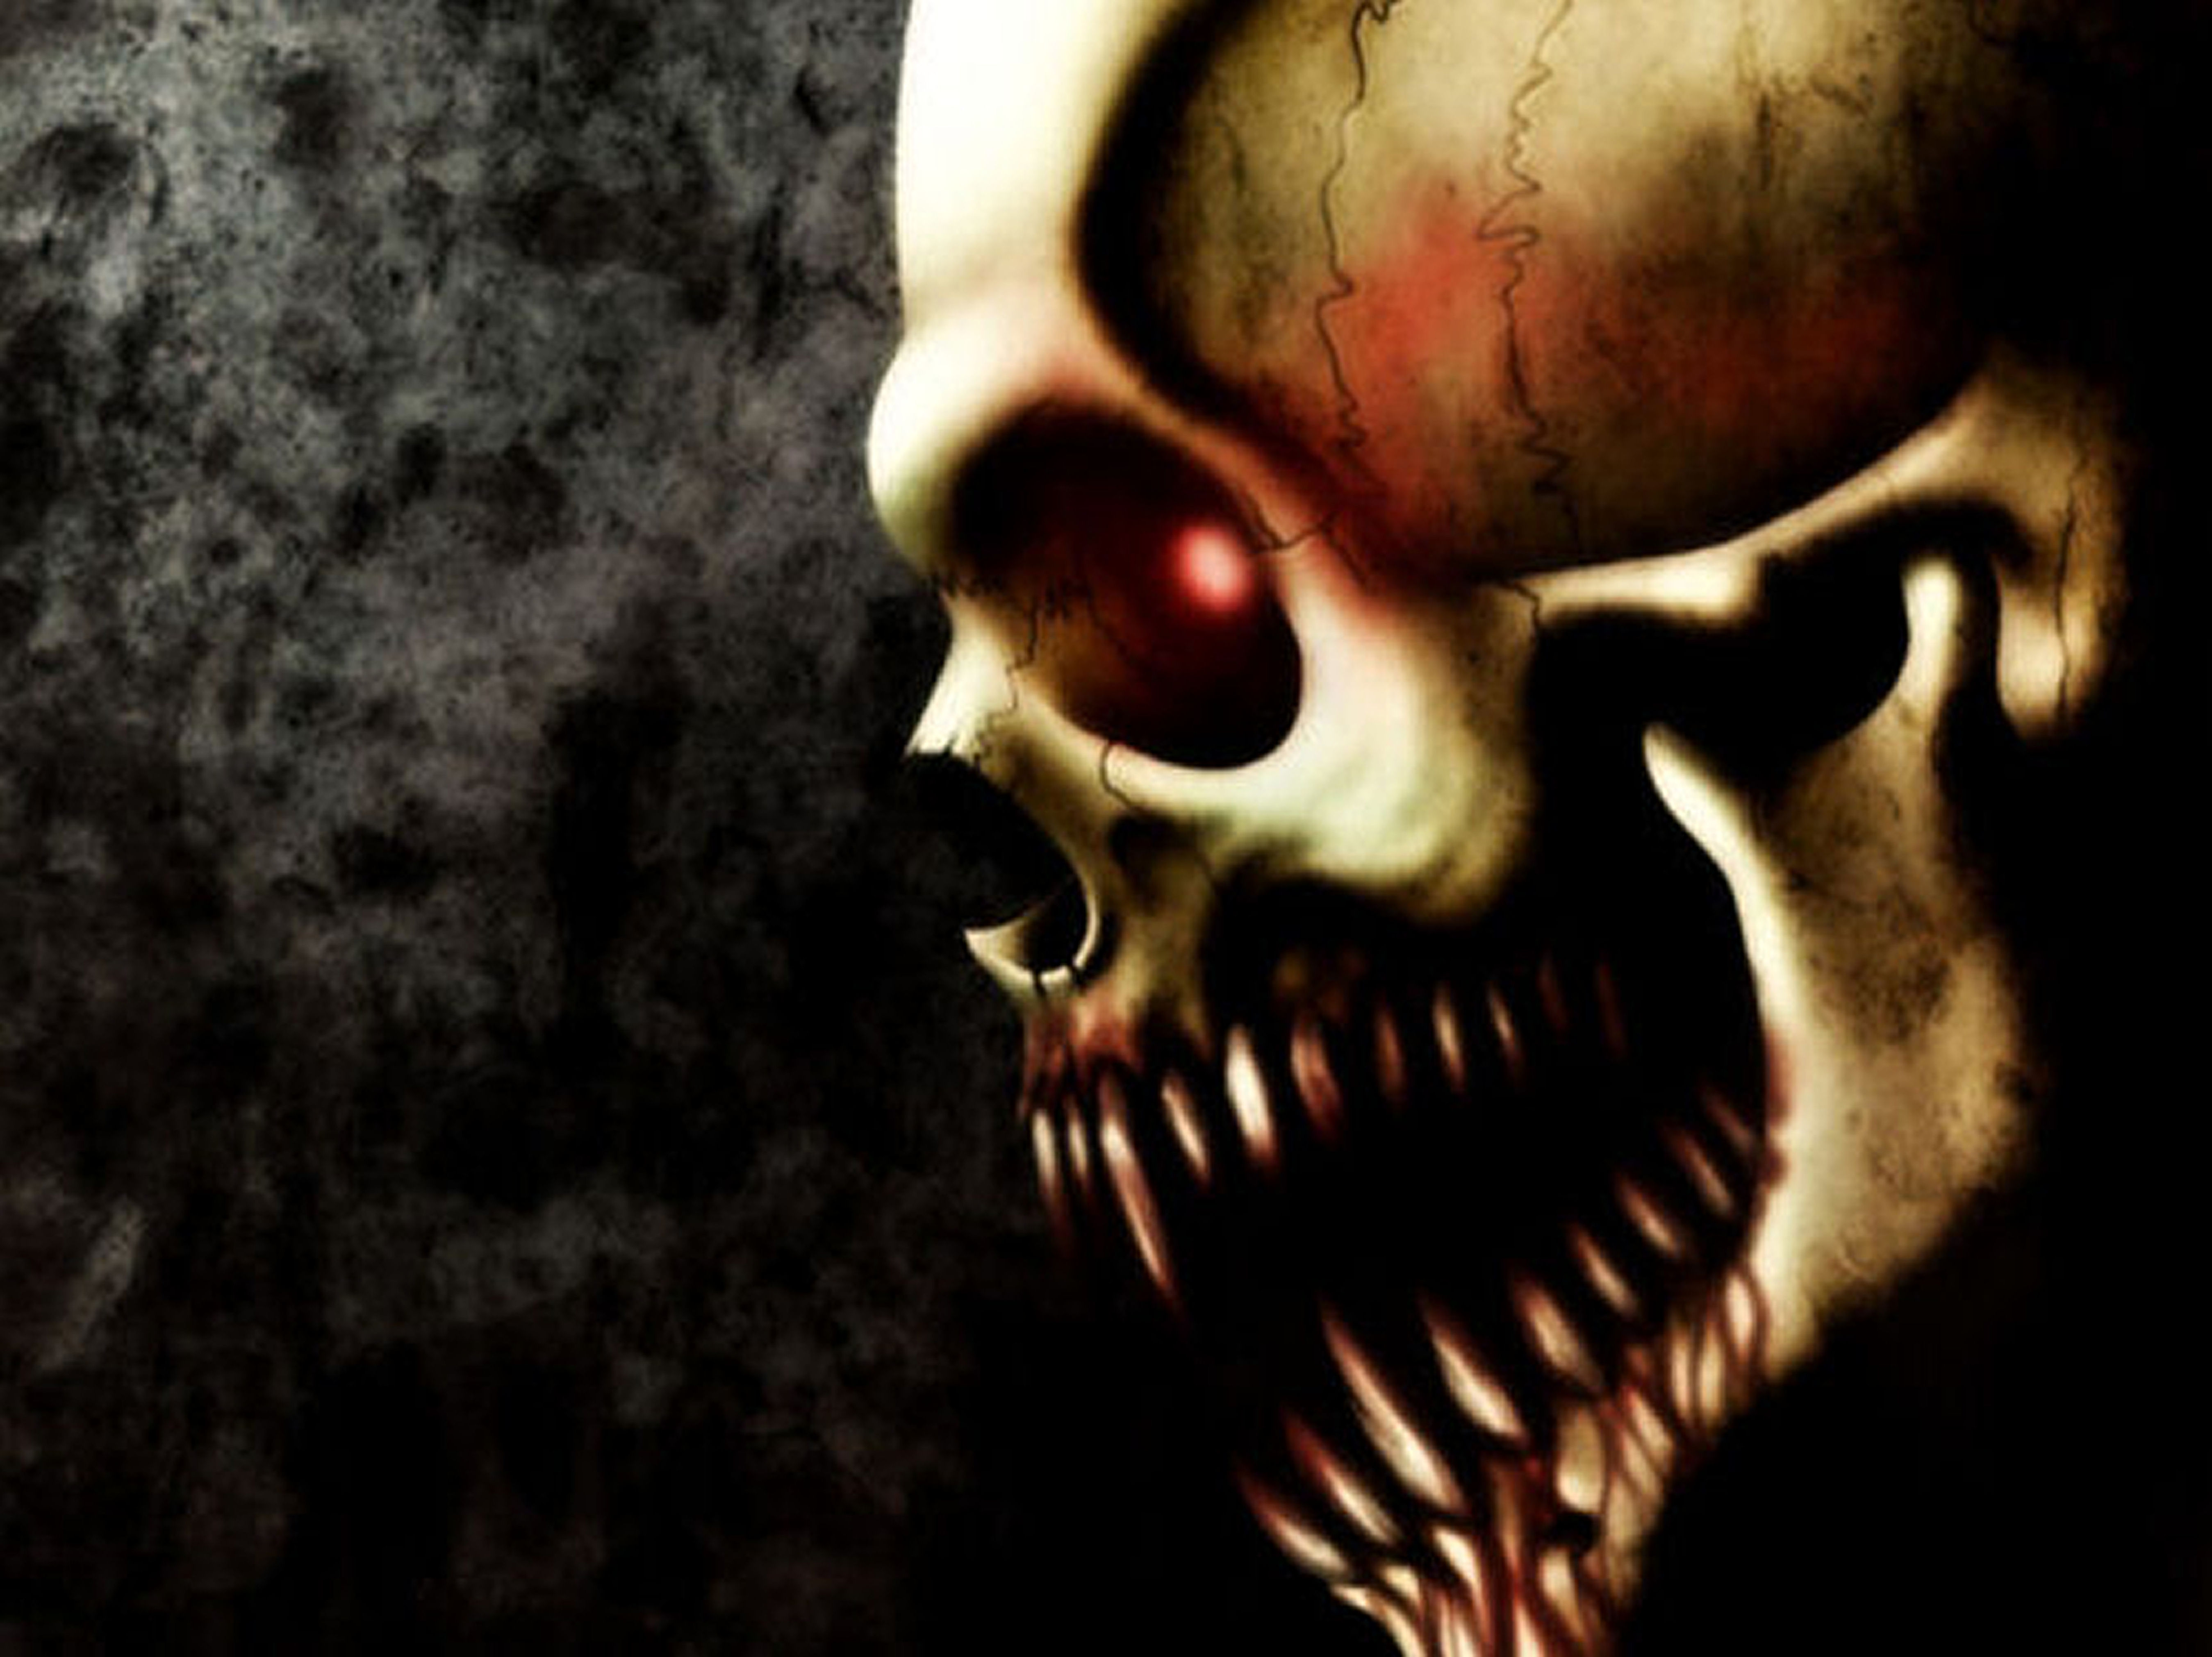 Evil skeleton wallpaper wallpapersafari - Devil skull wallpaper ...